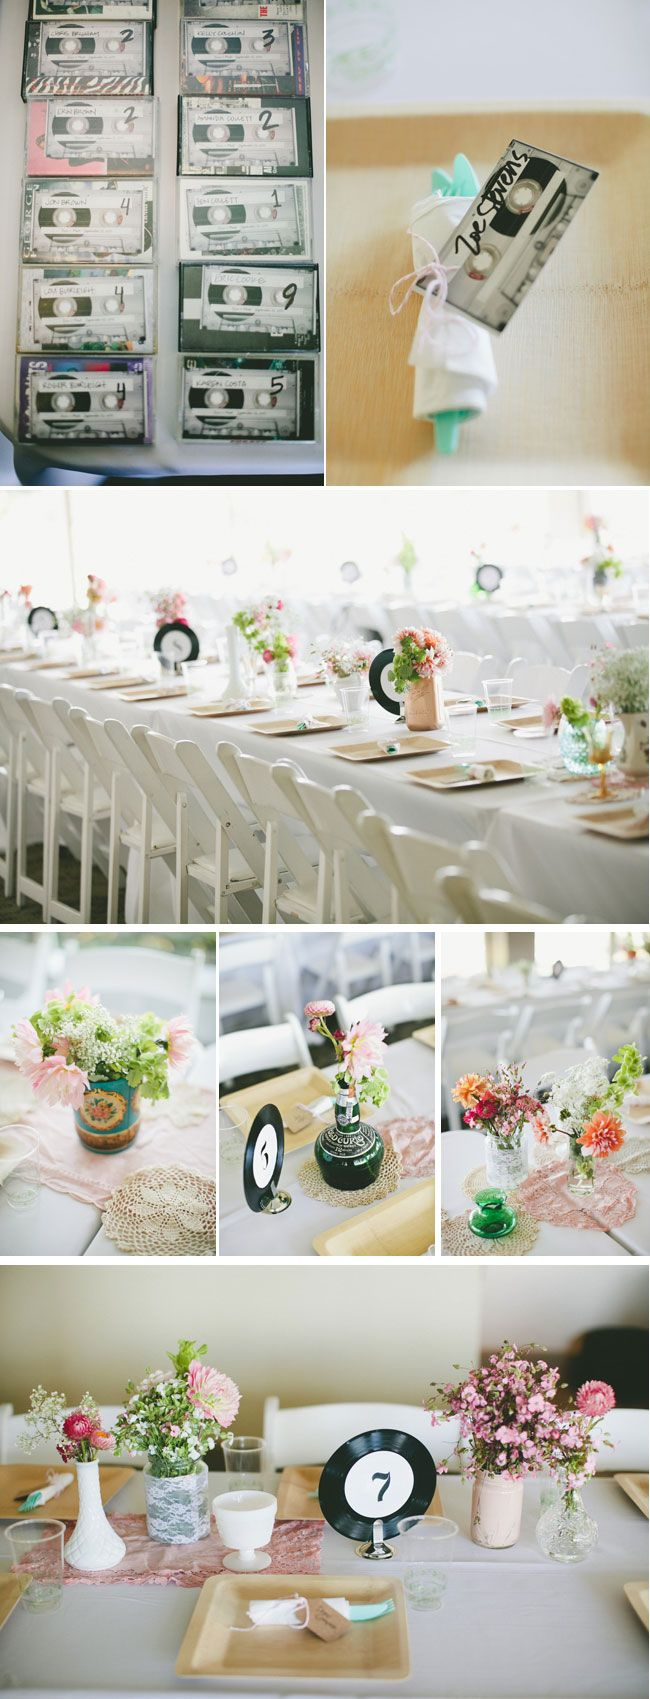 Great ways to incorporate a love of music into the wedding decor